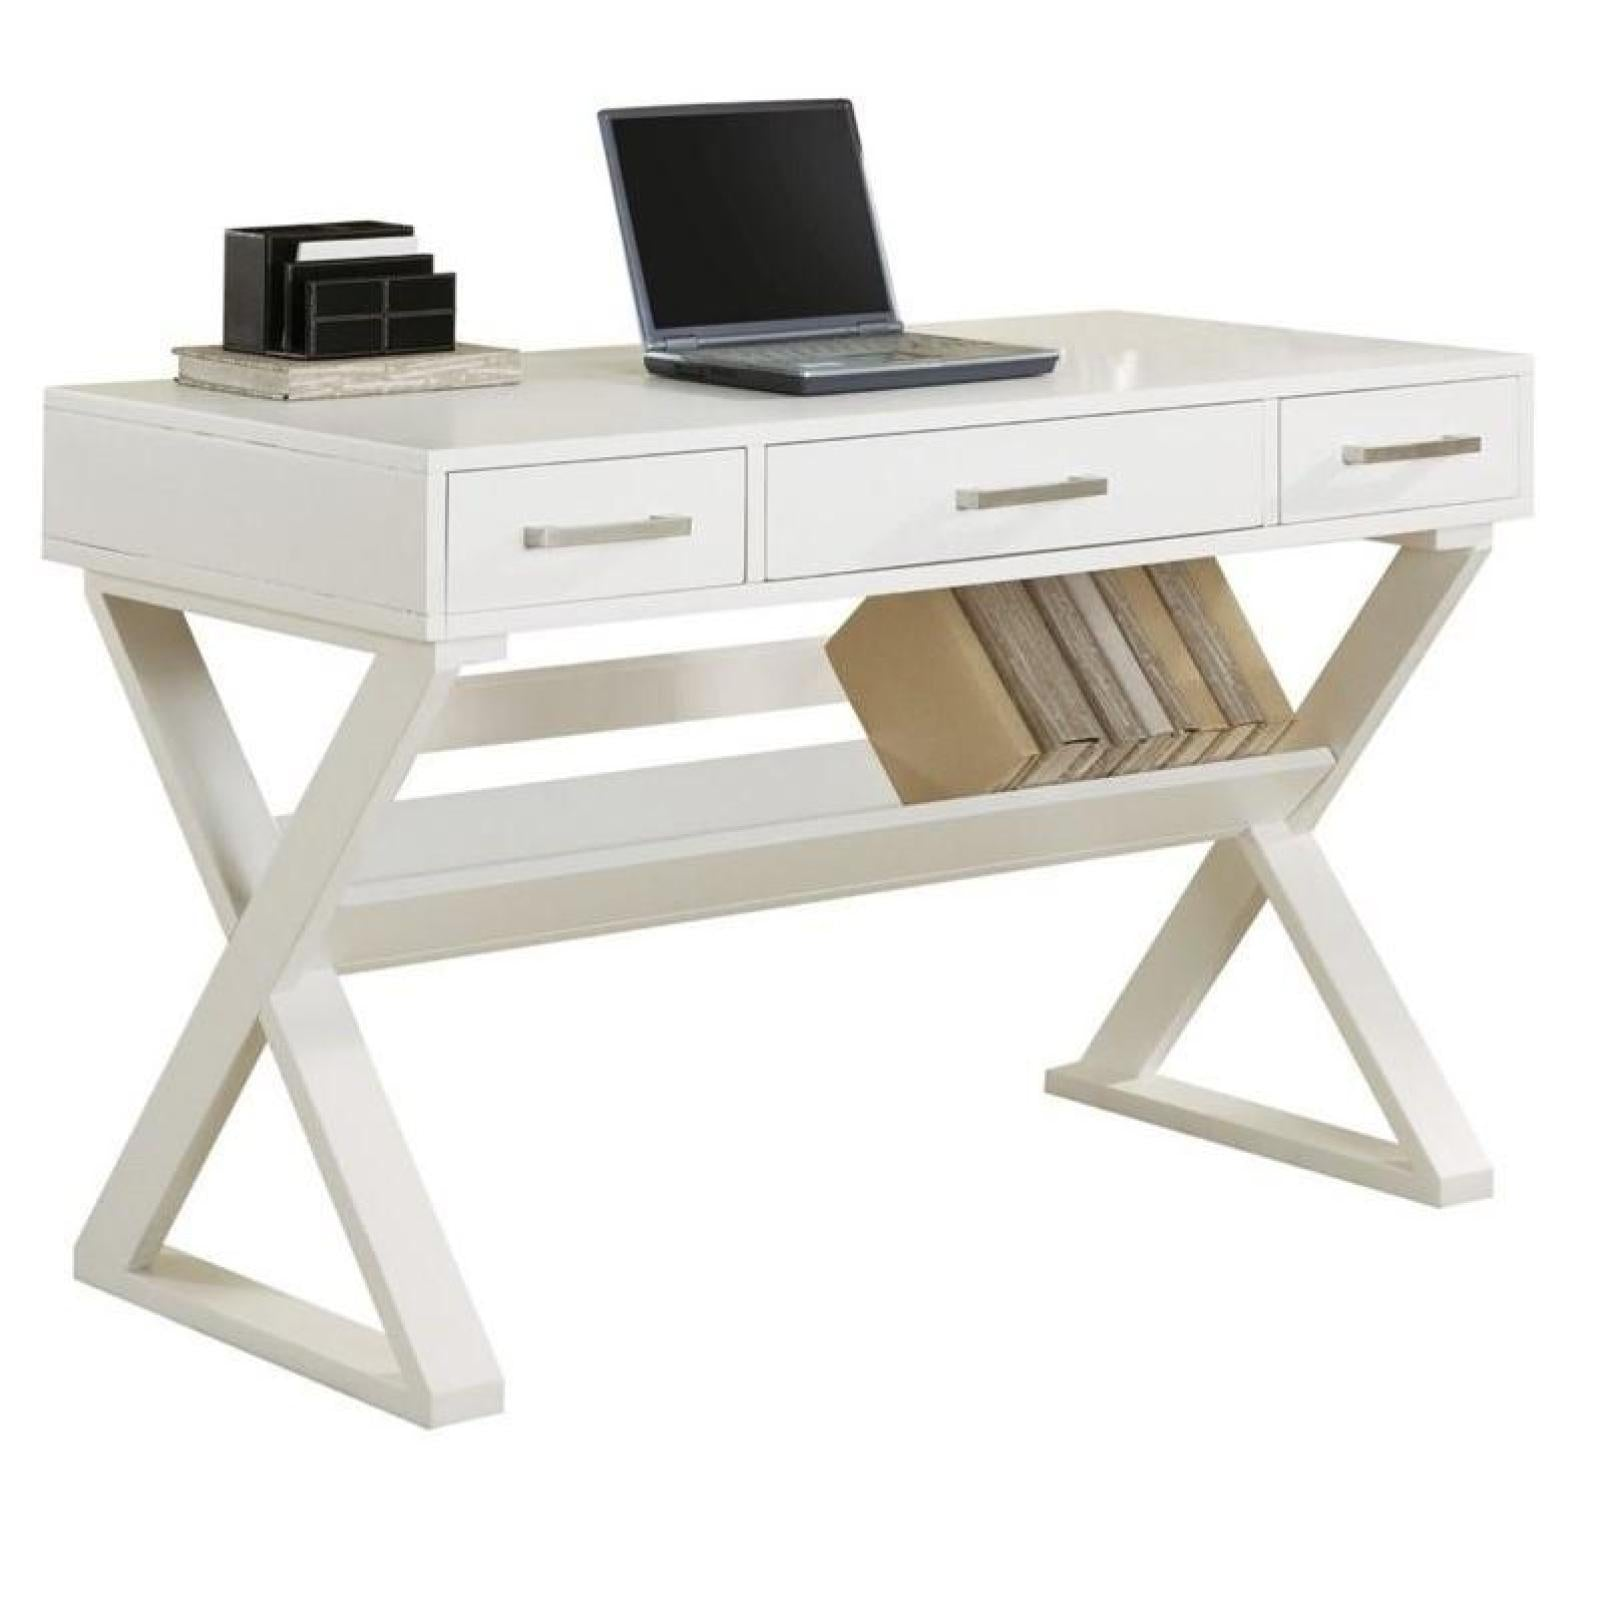 product home nordic free desk drawers overstock drawer shipping today garden